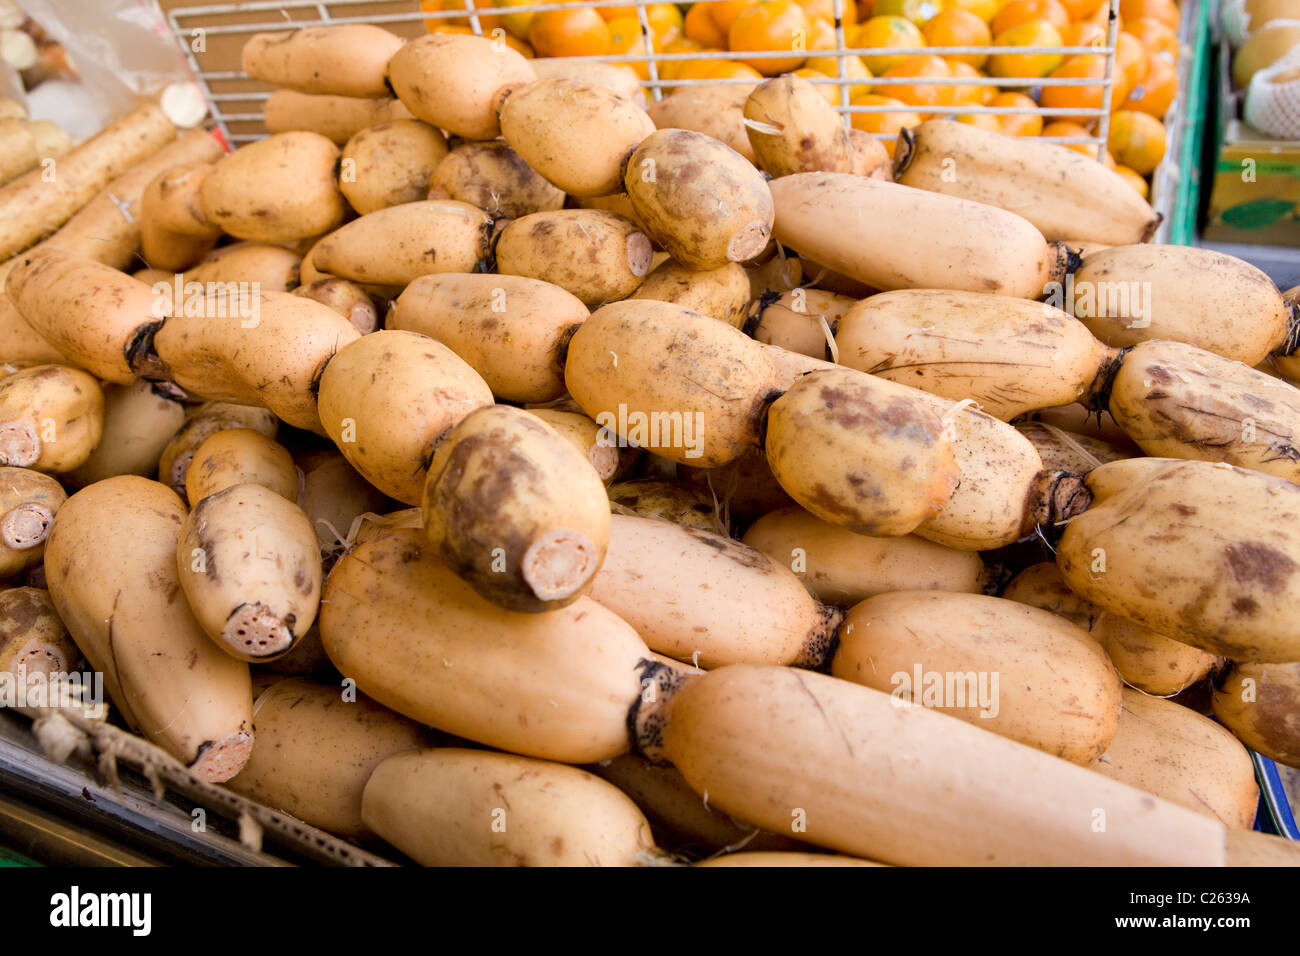 A stack of whole lotus roots - Stock Image